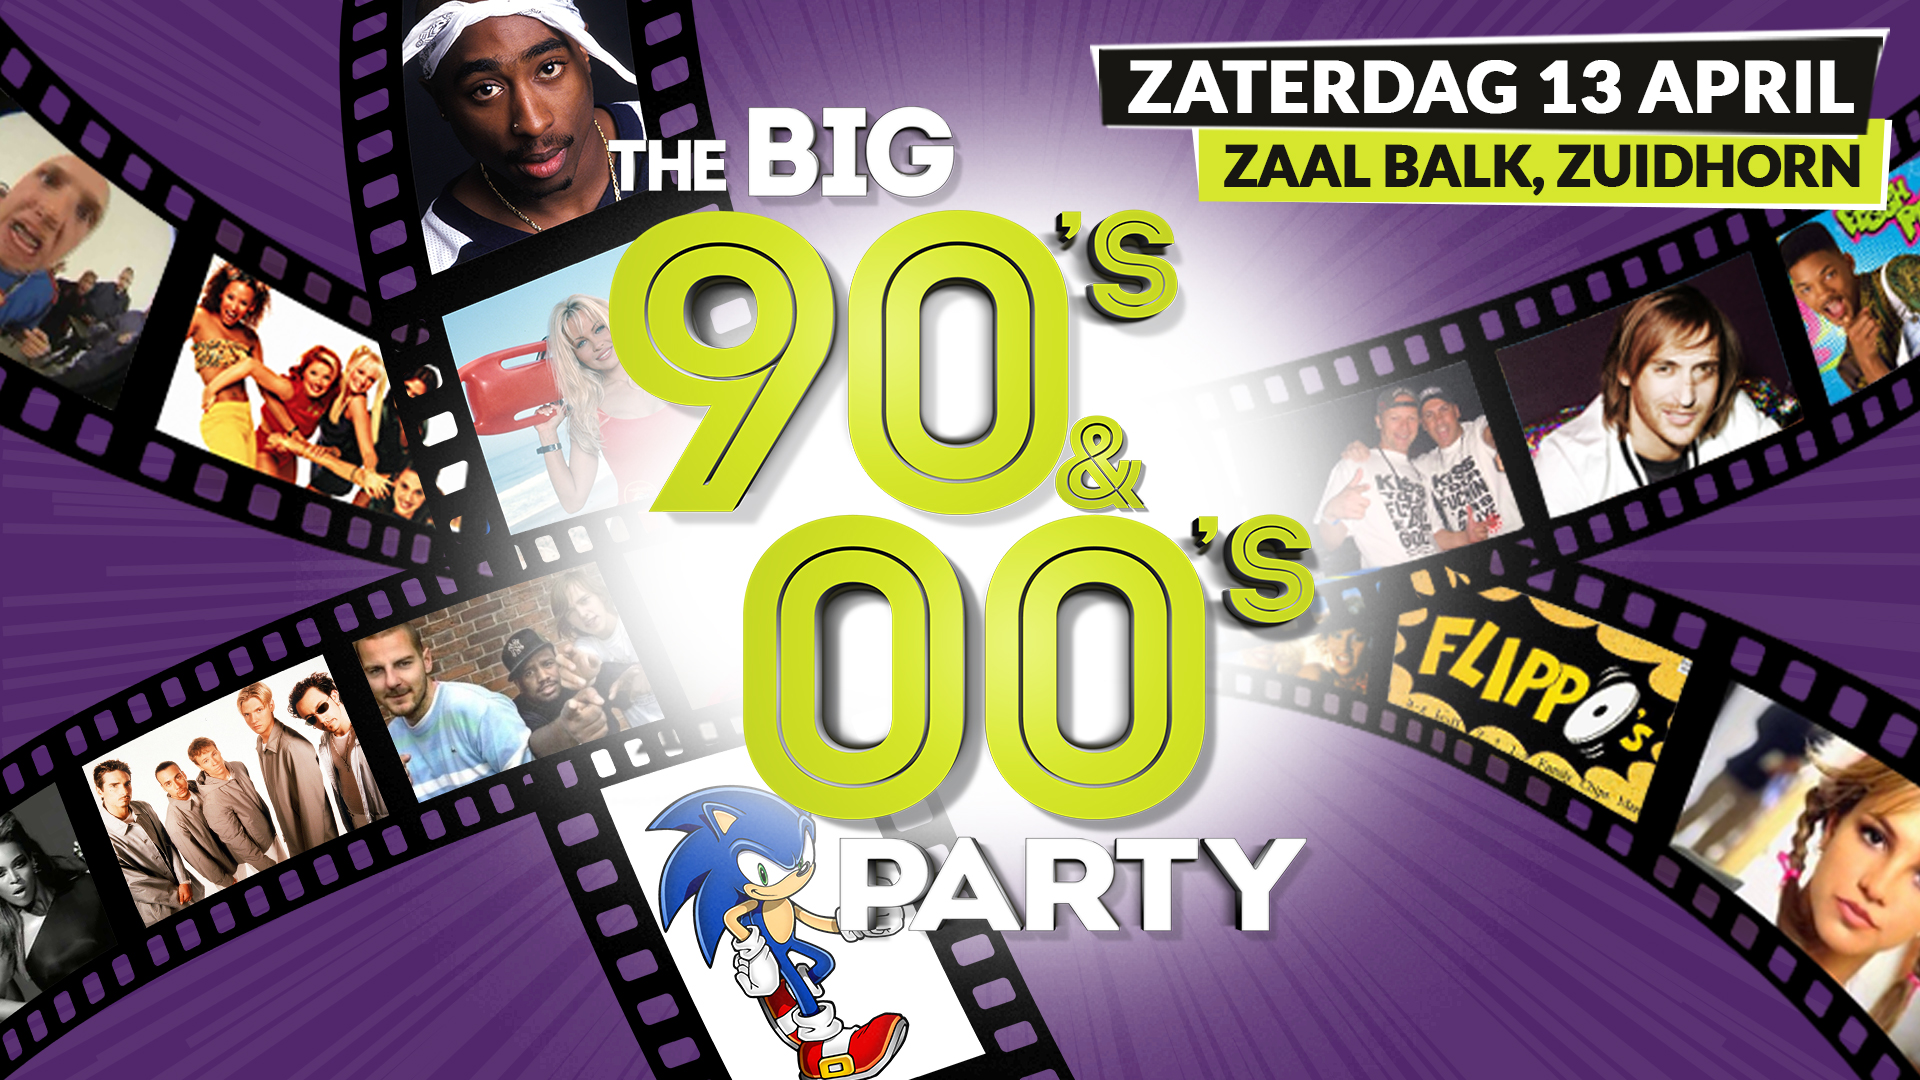 The Big 90's & 00's Party